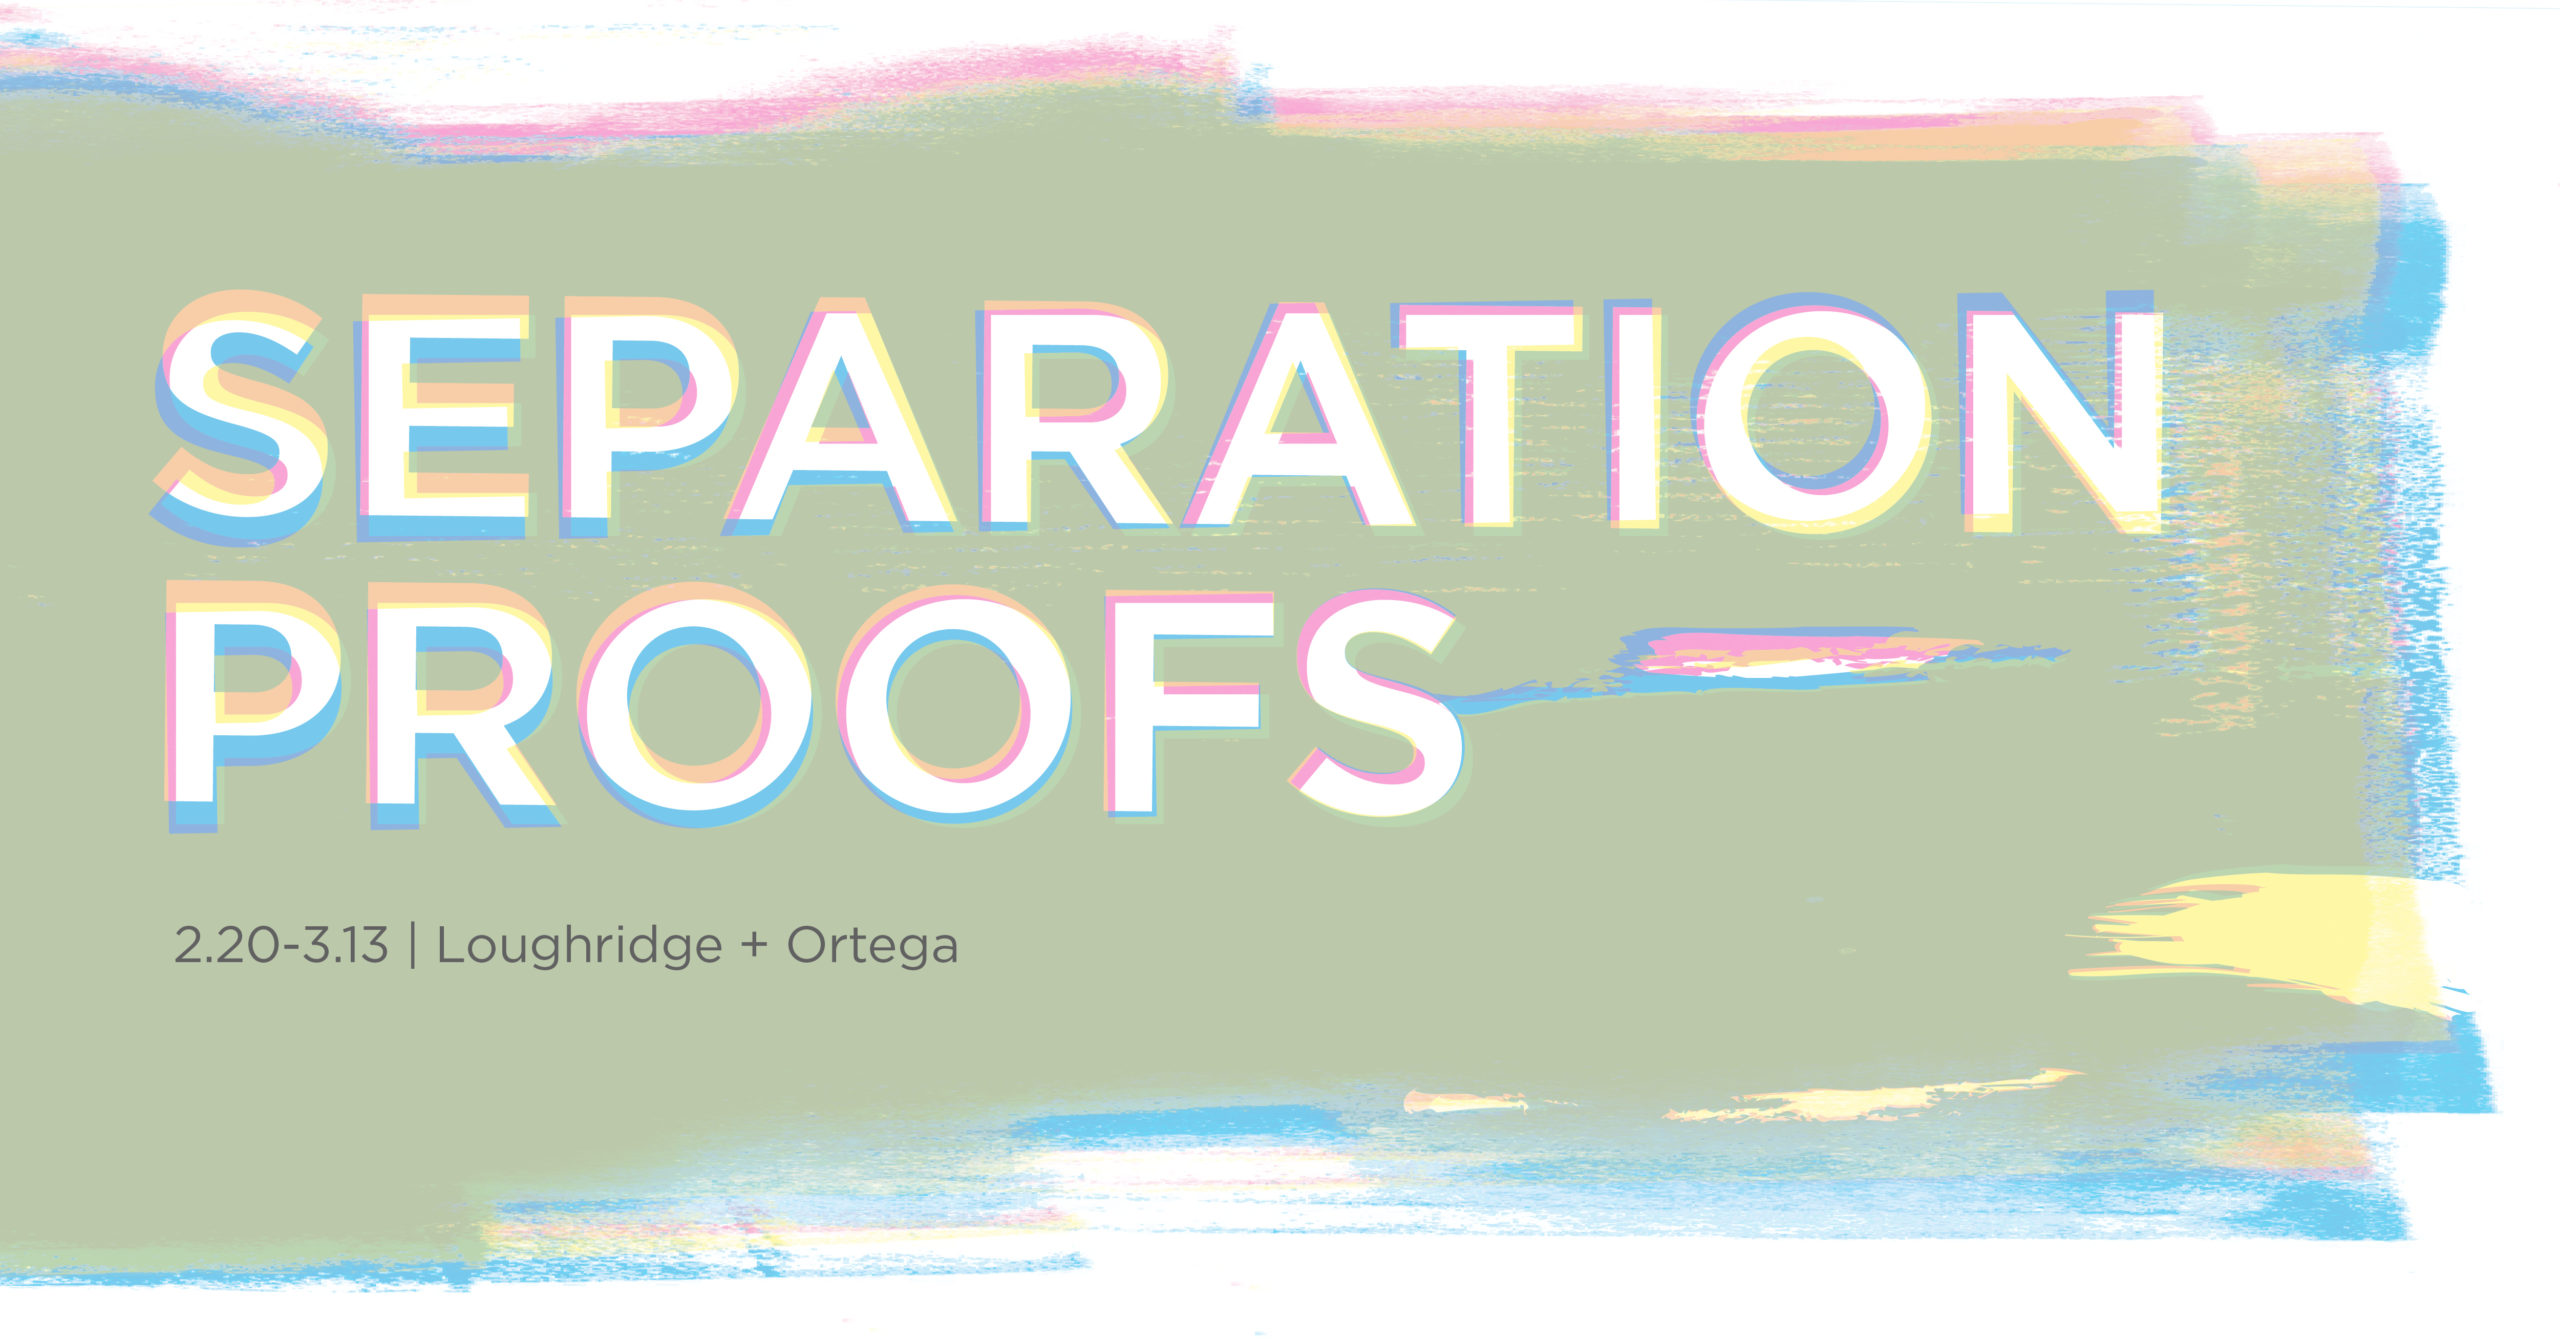 Separation Proofs, February 20 - March 13, Loughridge and Ortega